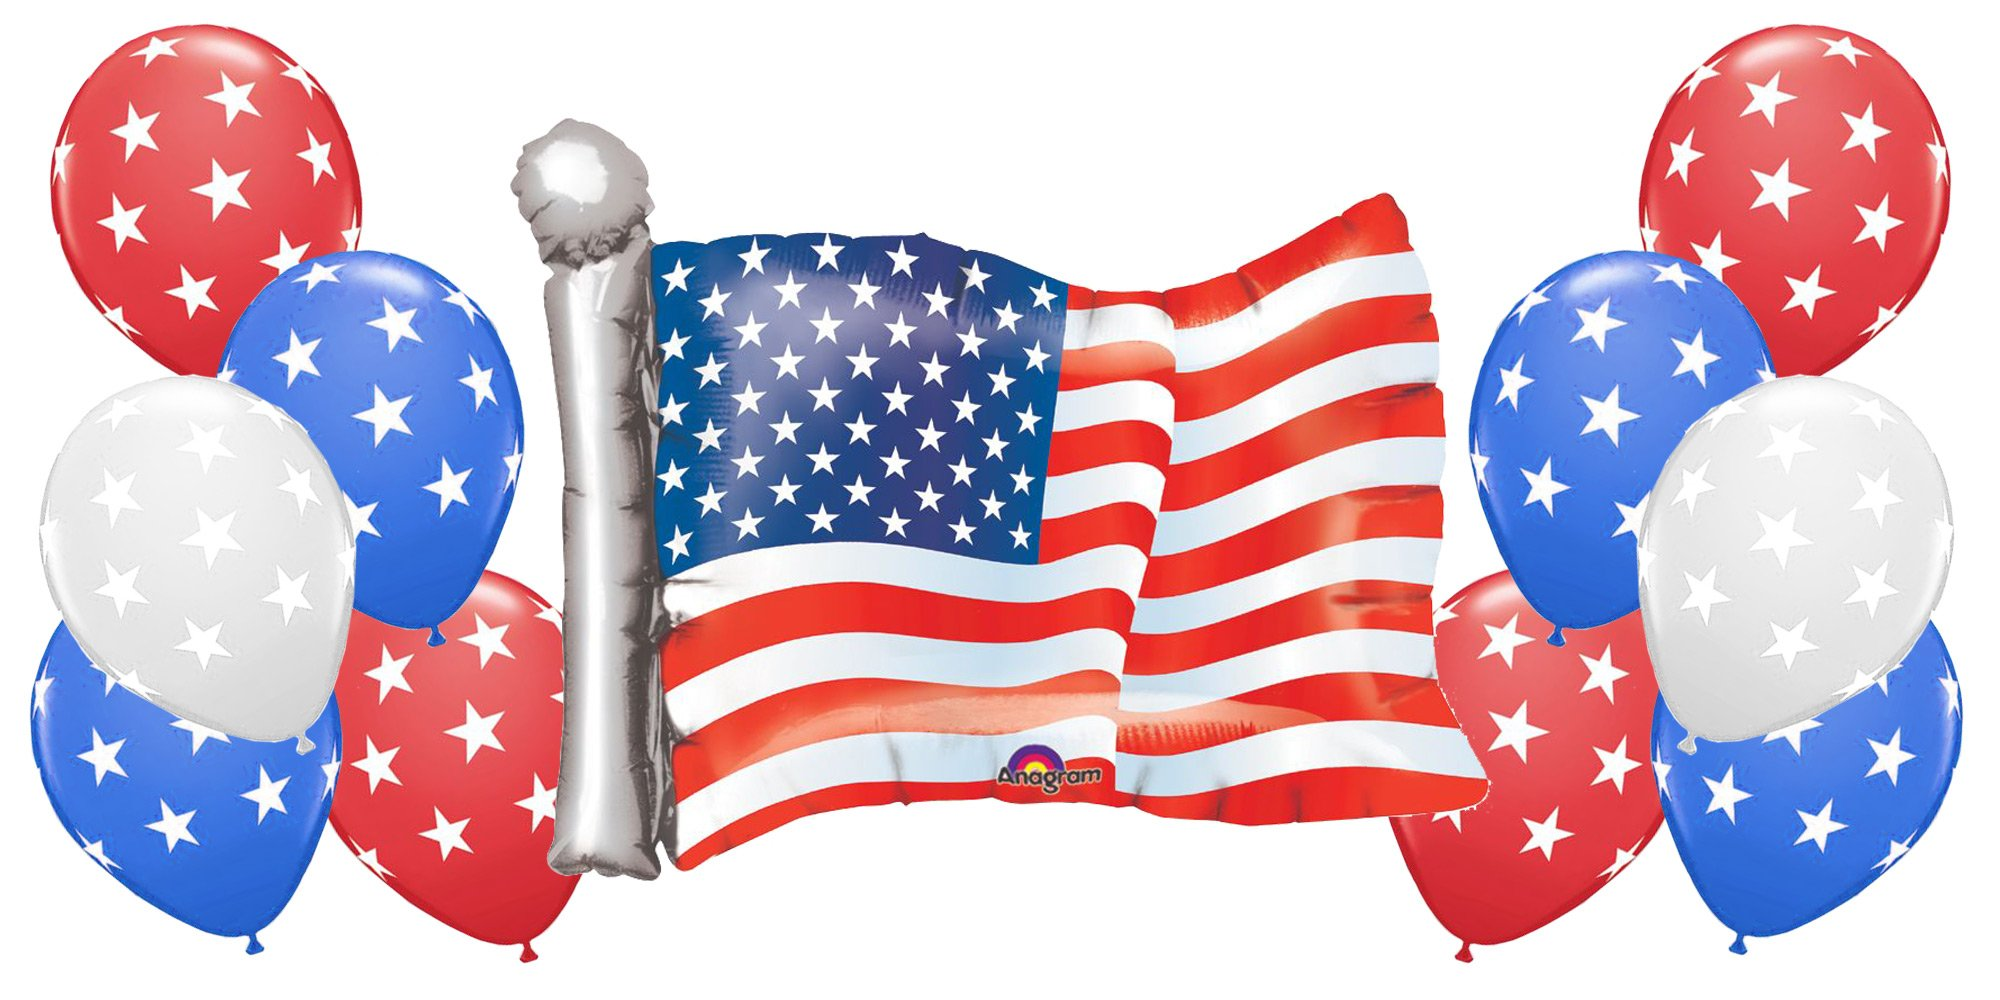 American Flag with 10 Red White and Blue Star Balloons Patriotic Bundle